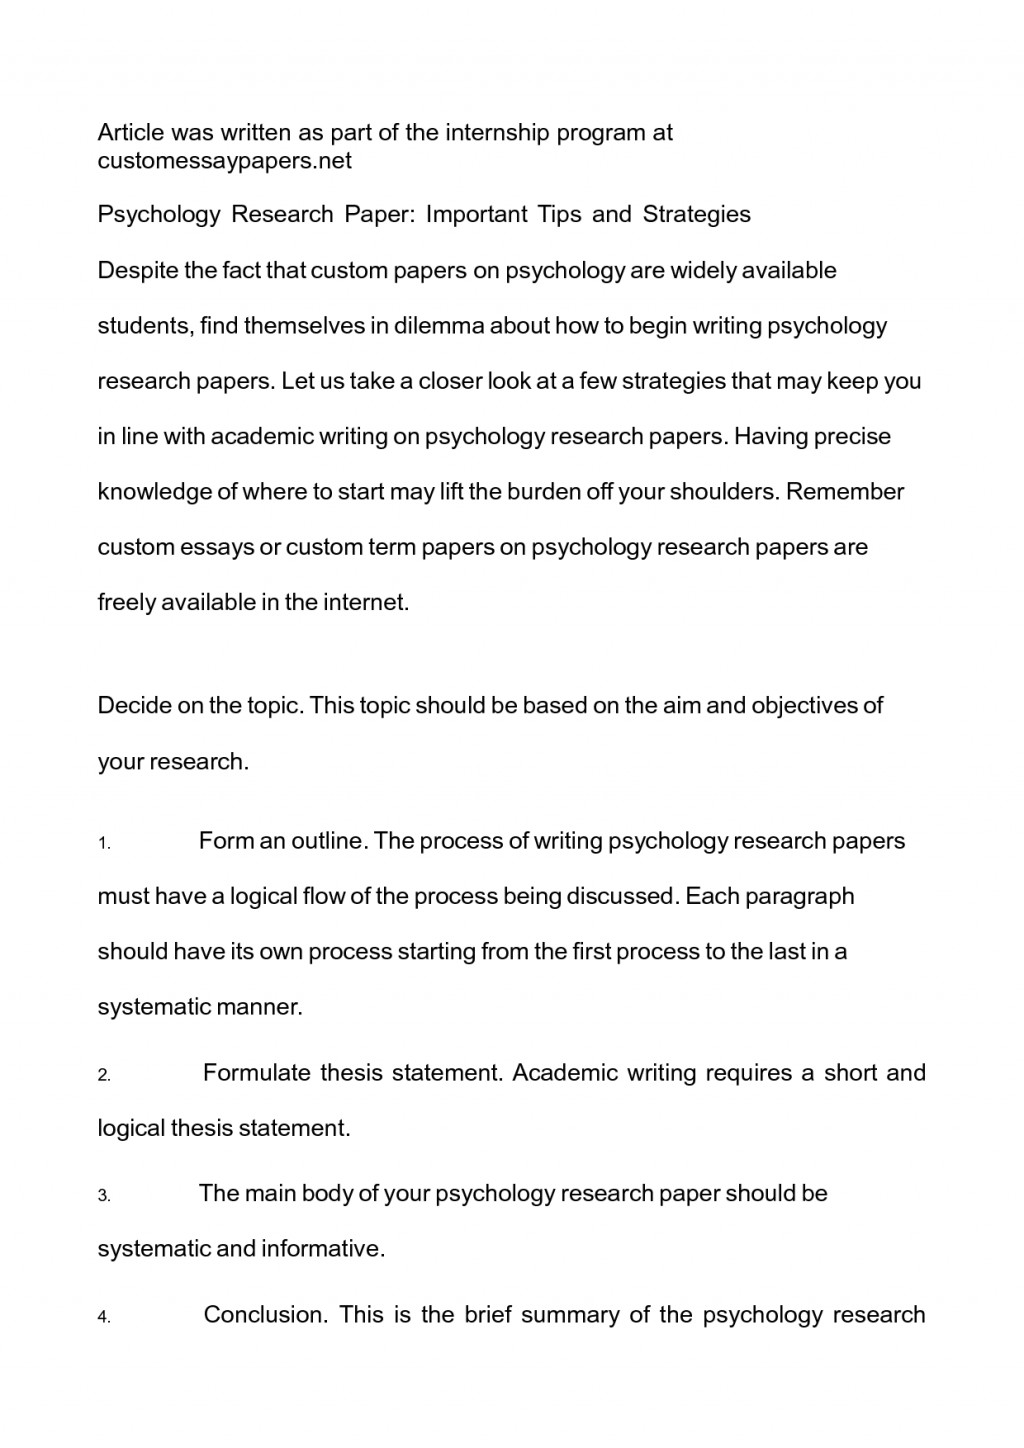 024 Psychology Research Paper Writing Archaicawful Services In Delhi Service Reviews Large